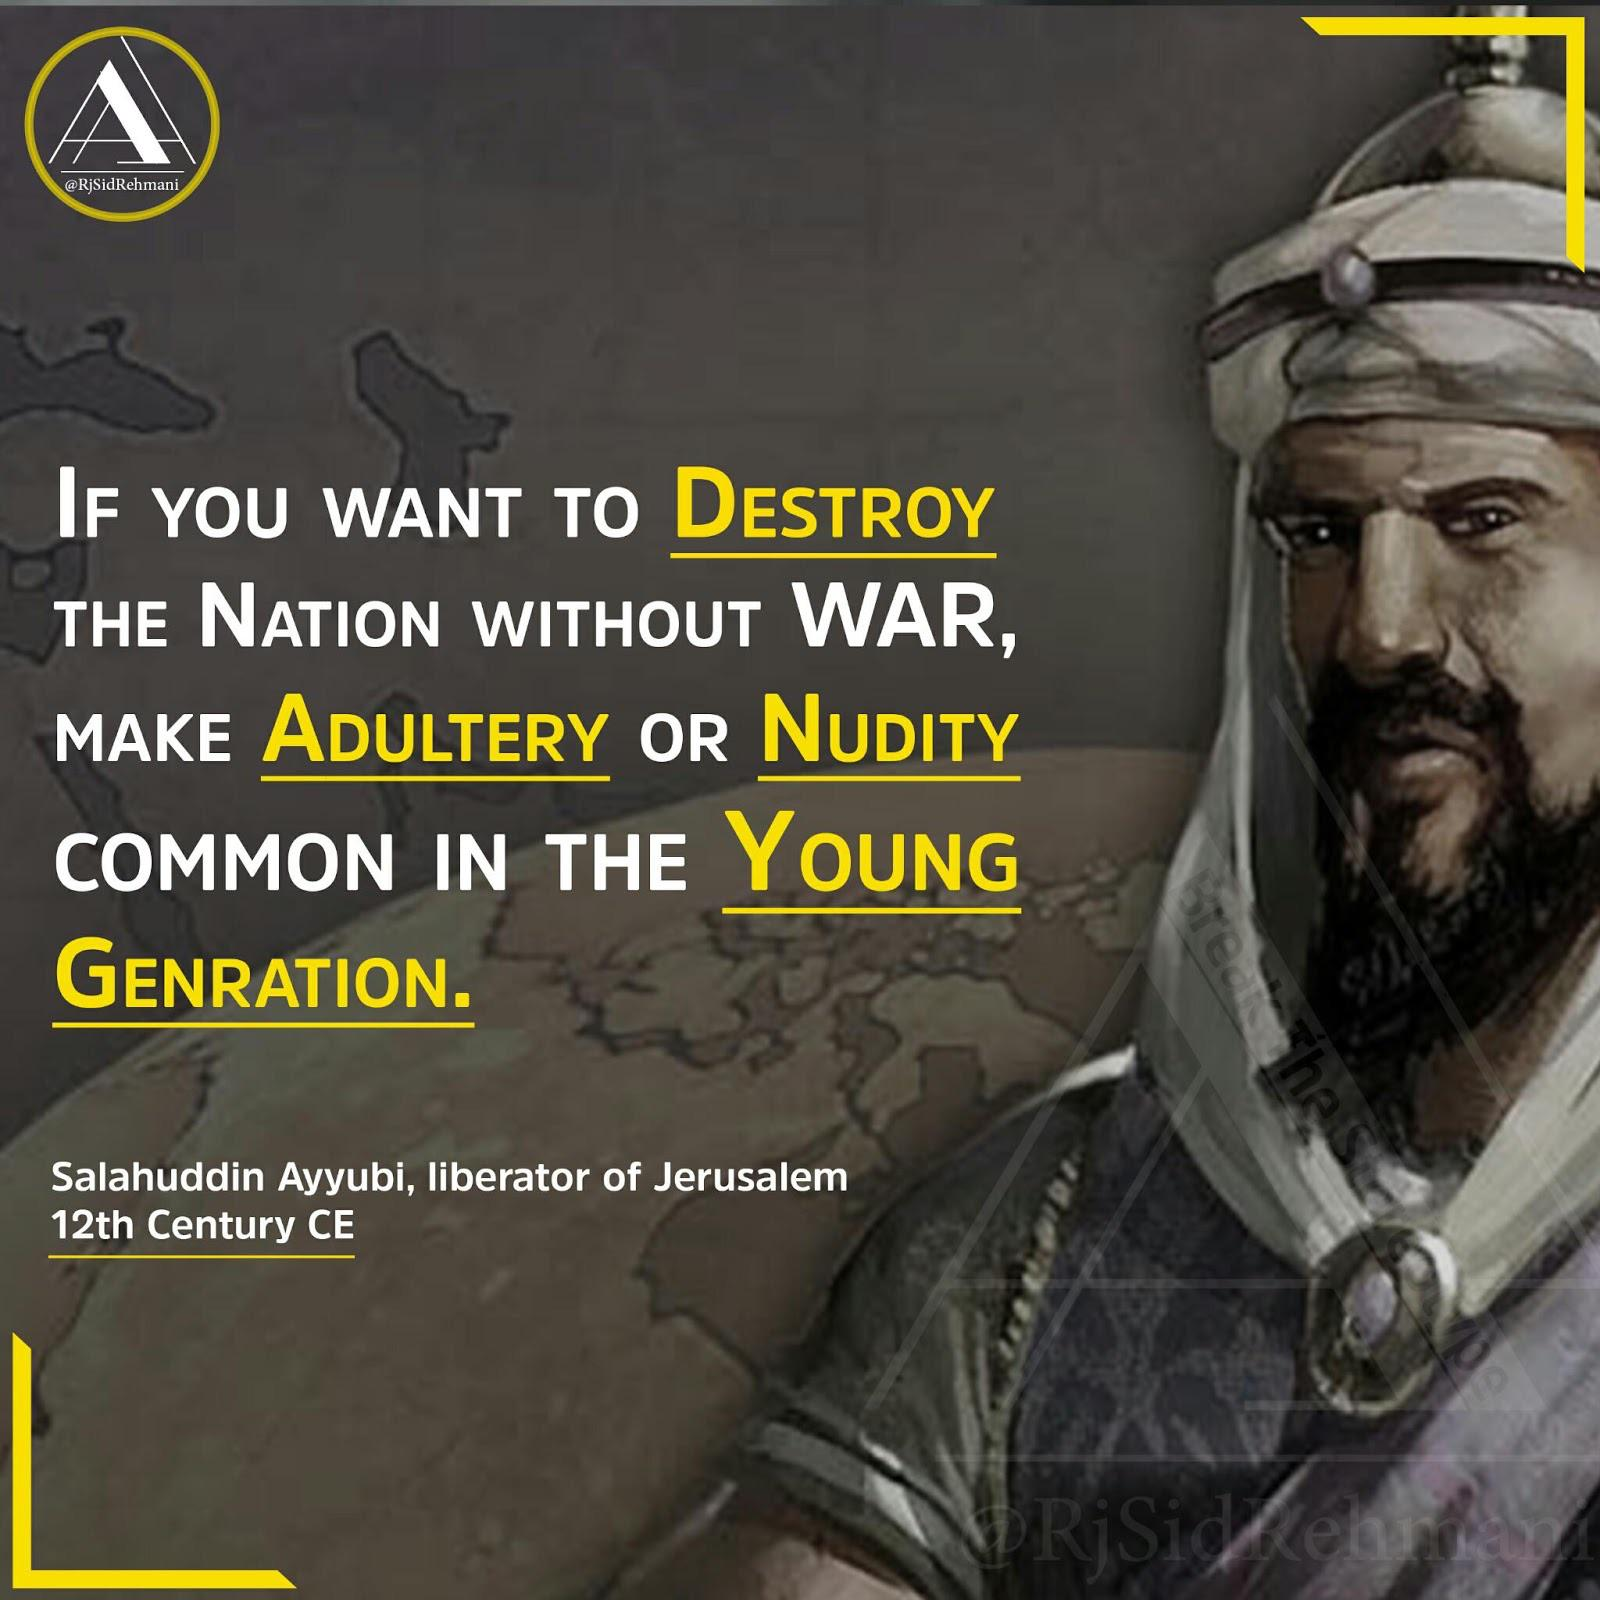 """If you want to Destroy the nation without WAR, make Adultery or Nudity common in the Young Generation."" – Salahuddin Ayyubi [1600 x 1600]"